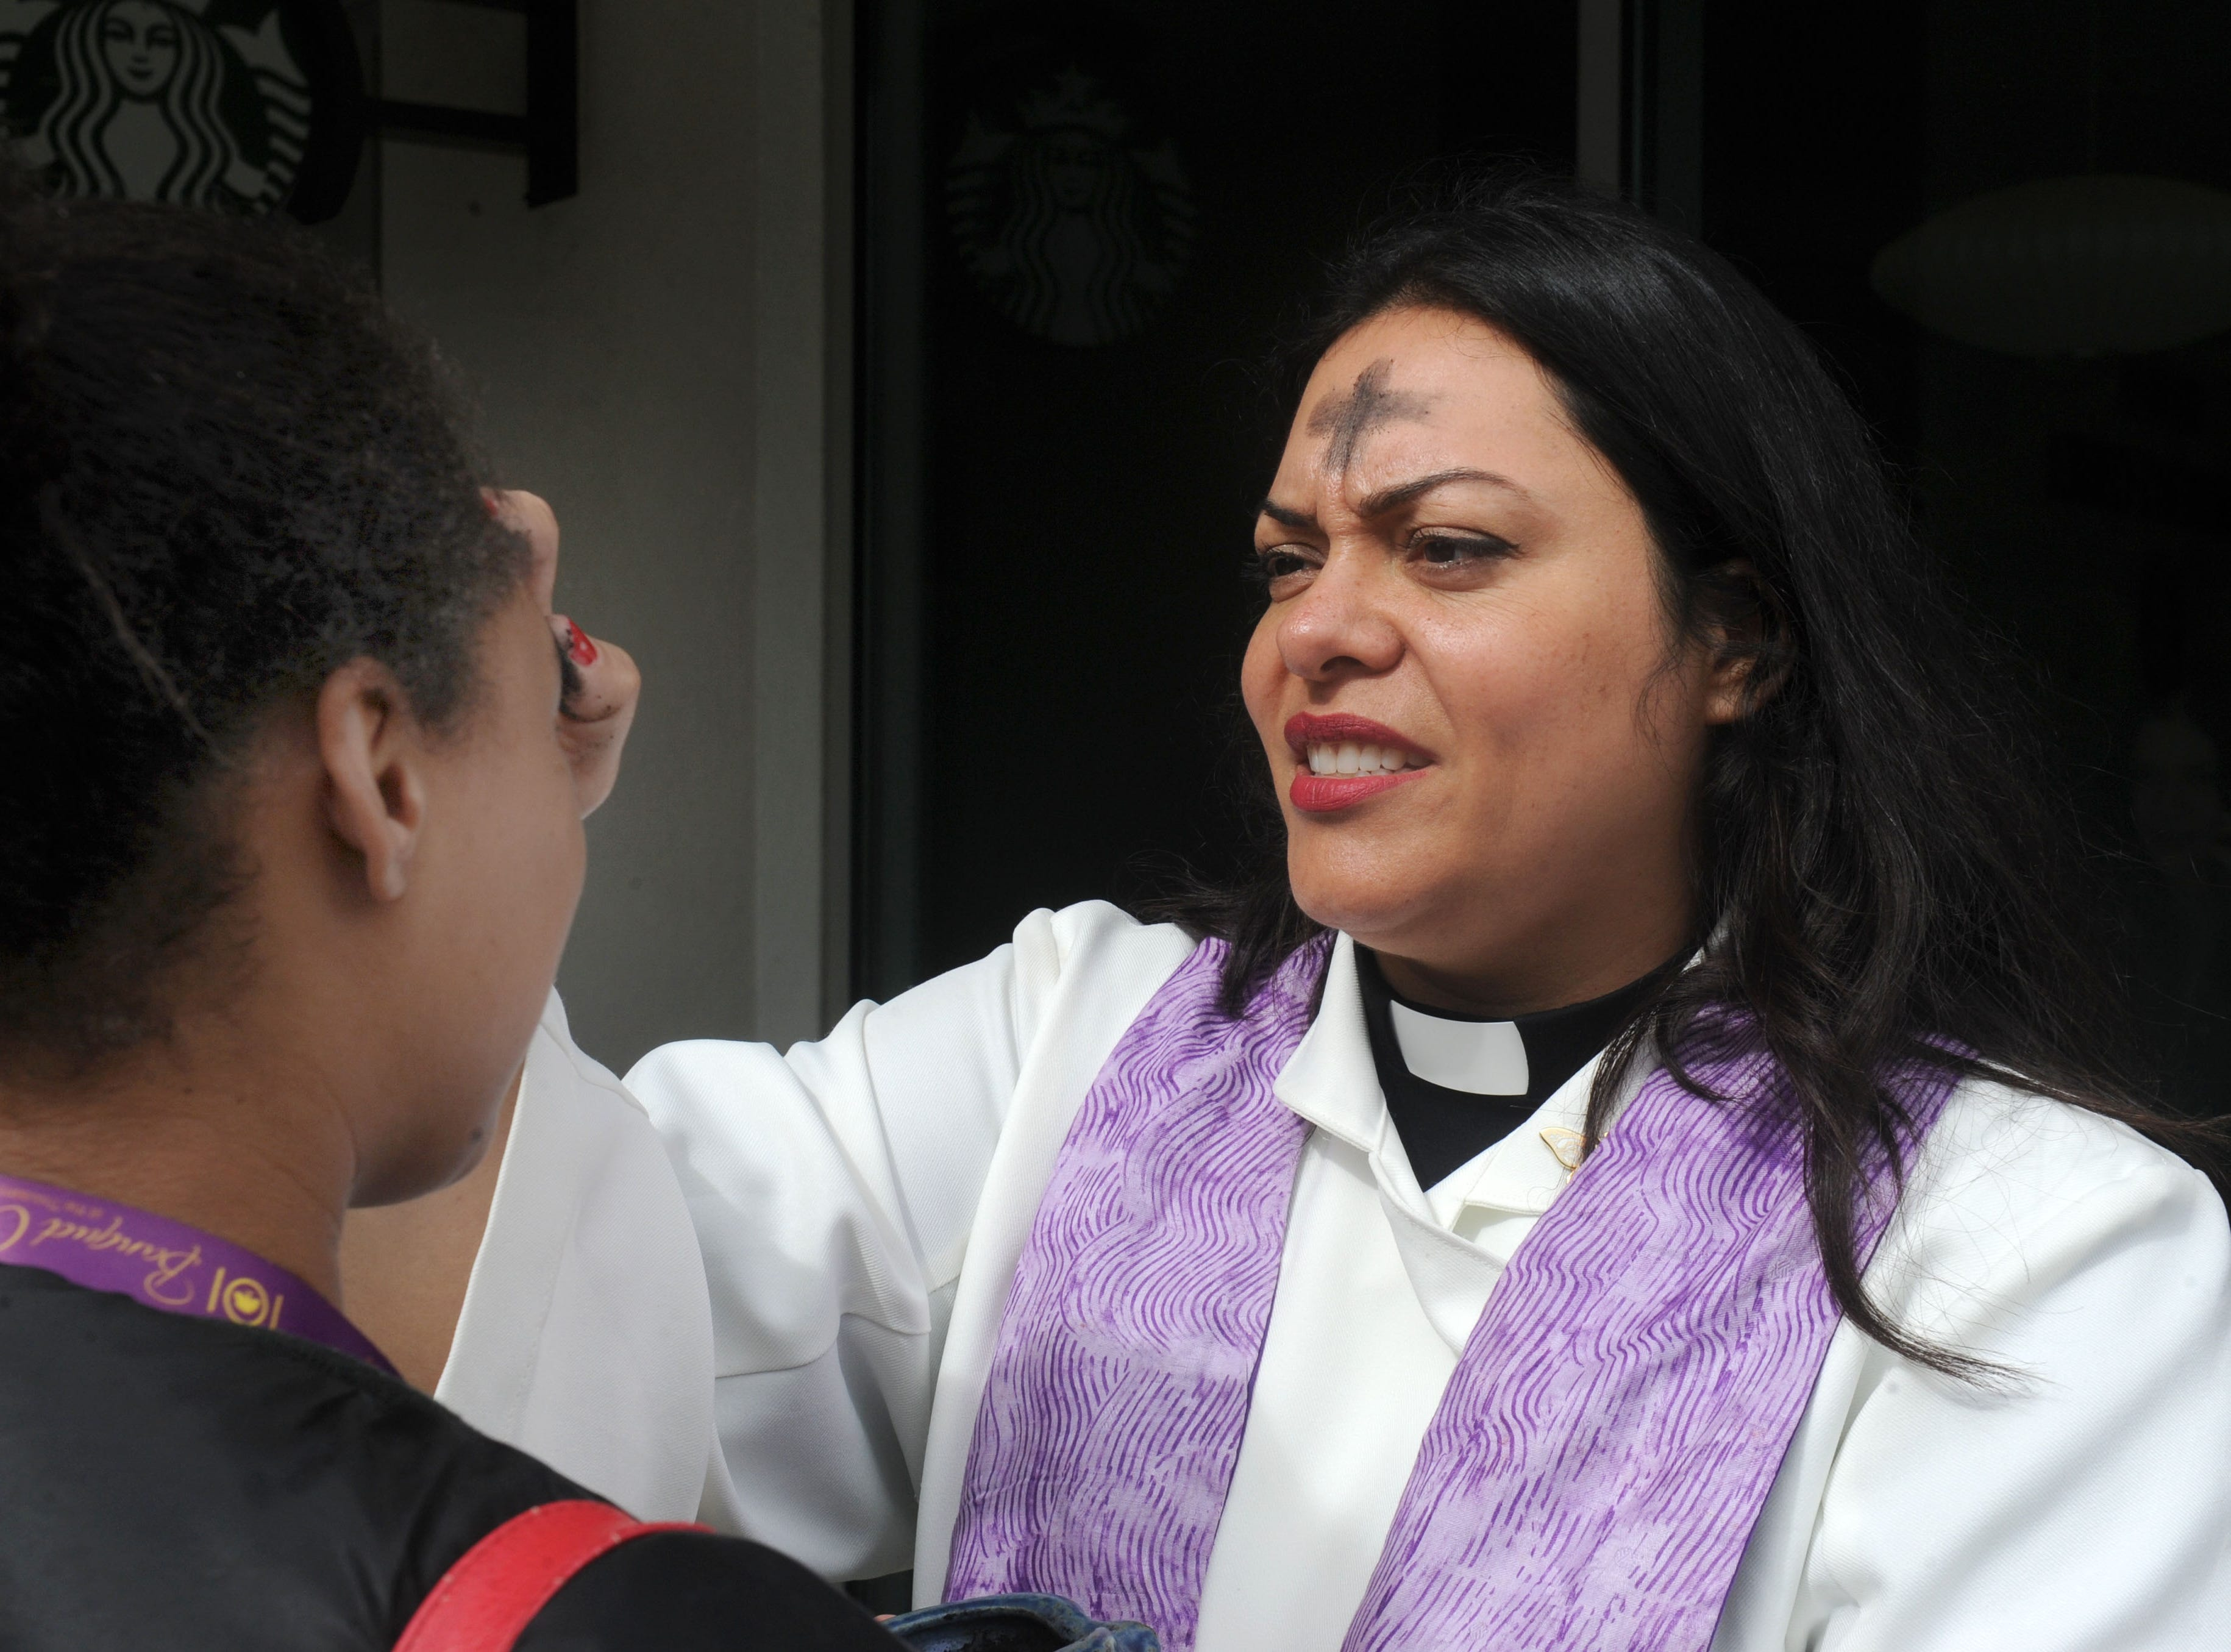 California Lutheran University student Rain Reaza receives ashes from campus minister the Rev. Hazel Salazar Davidson for Ash Wednesday. Ashes were distributed to students and staff at the Thousand Oaks university outside the Starbucks and at the flagpoles.